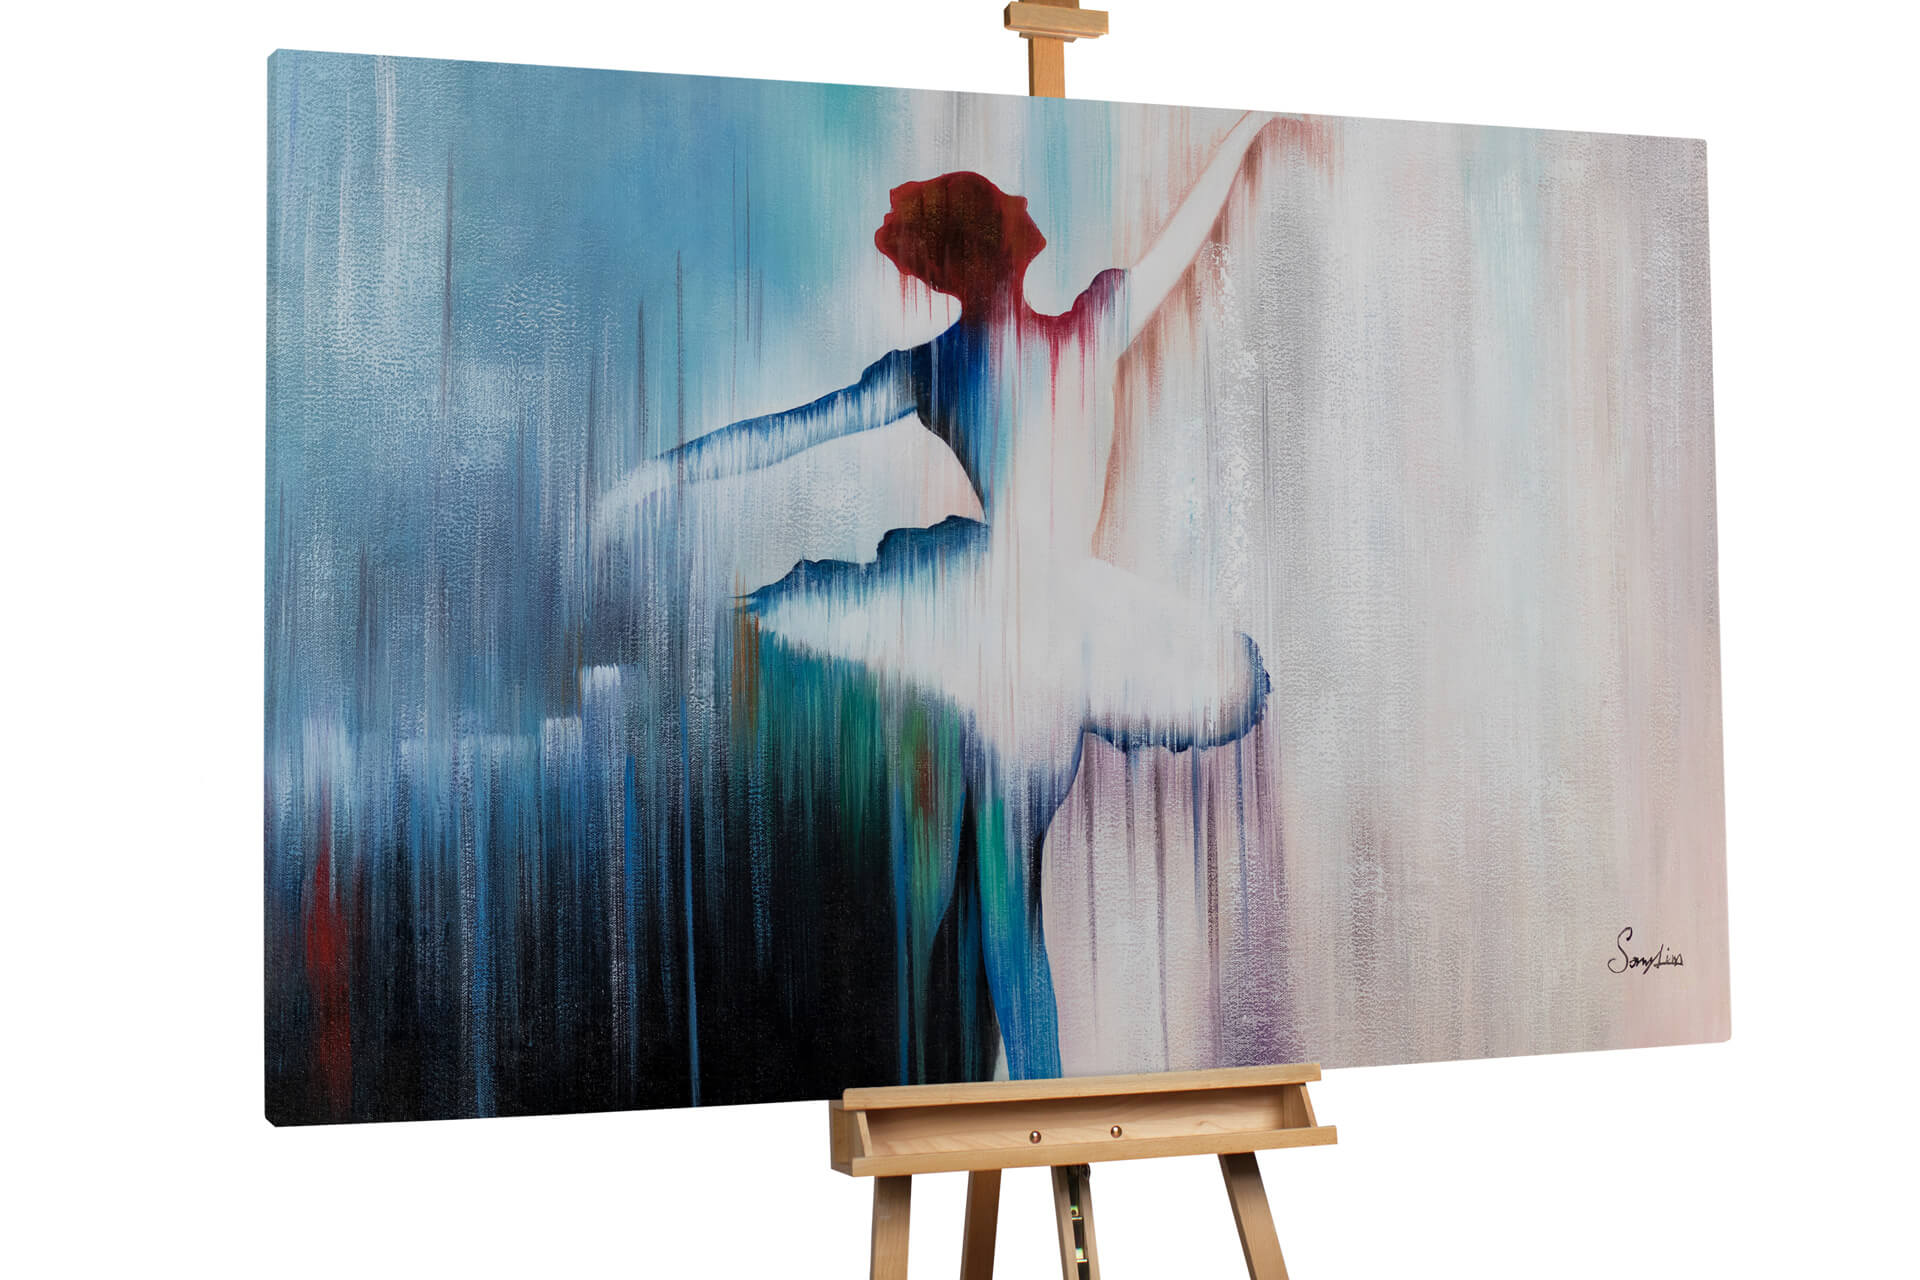 XXL oil painting 'Shadowy' 71x47 inches